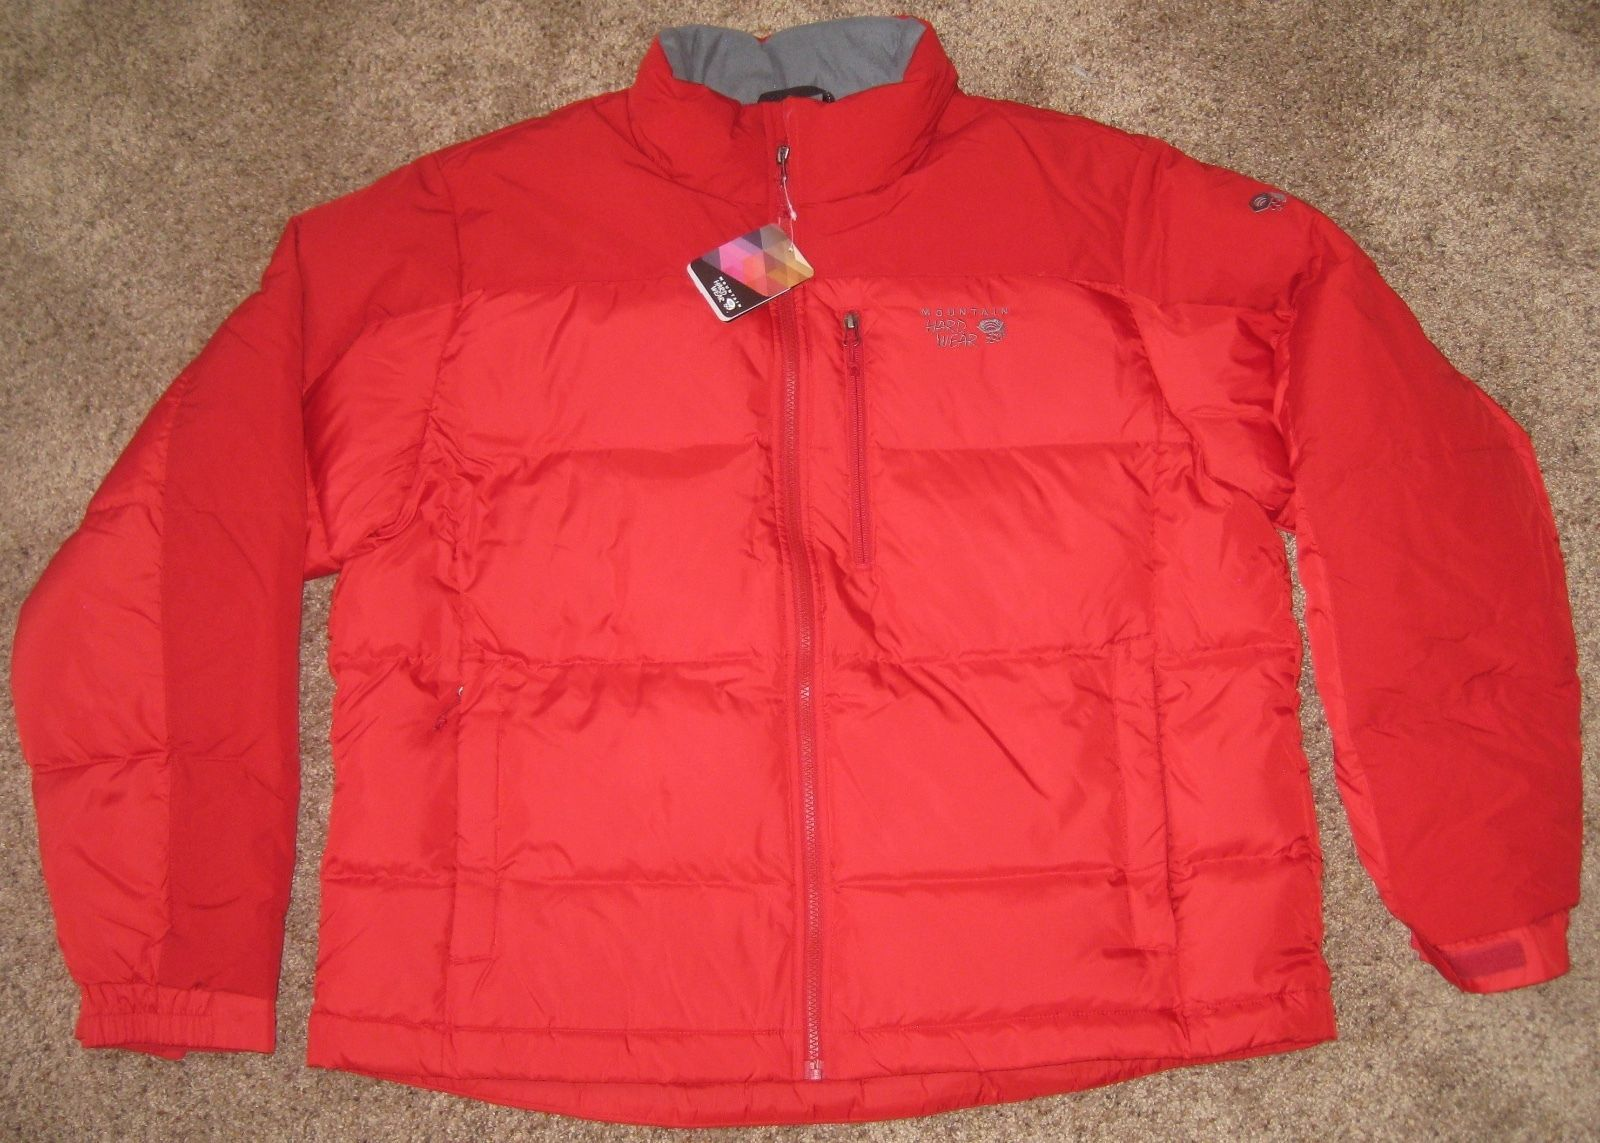 Primary image for Mountain Hardwear CLASSIC HUNKER DOWN JACKET COAT Men's M MD RED NEW OM0190 675